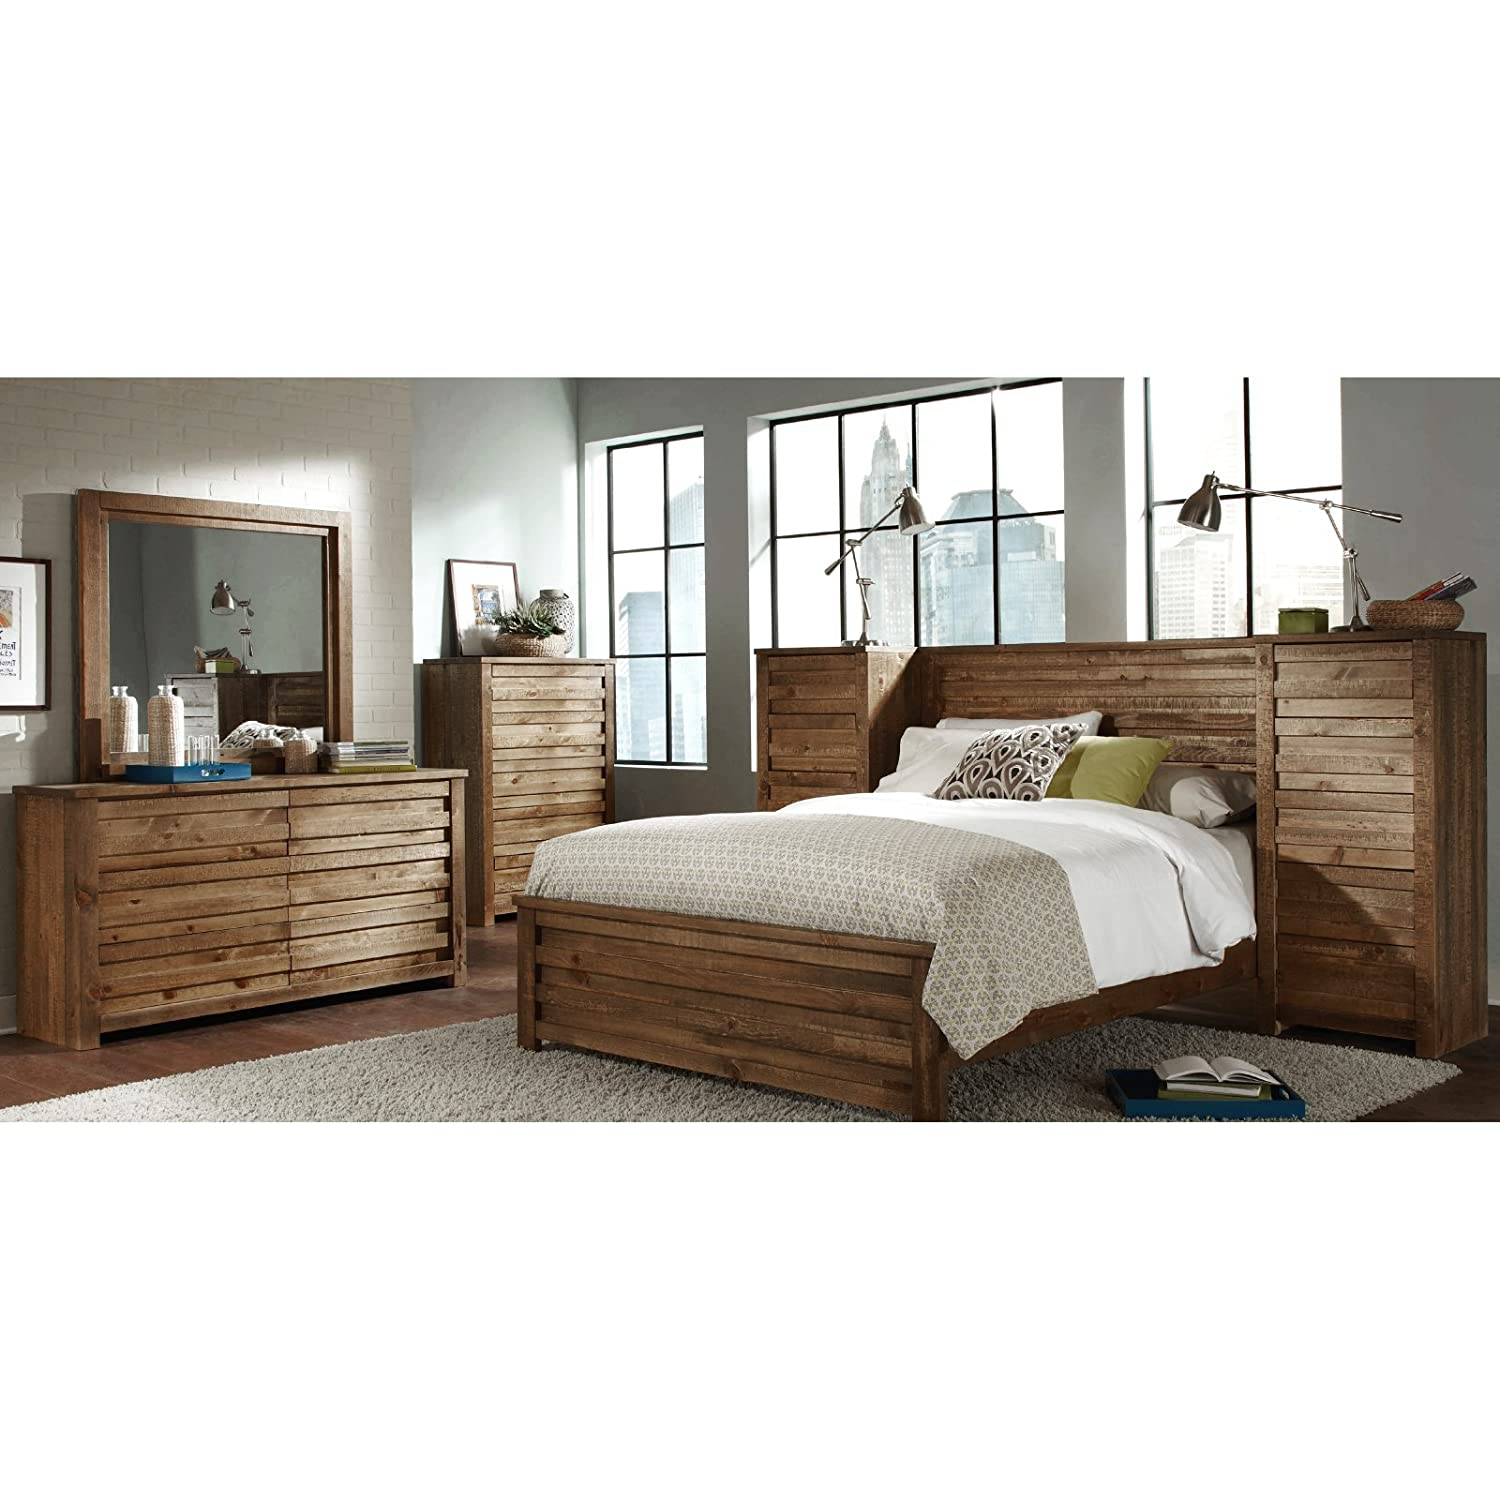 Amazon.com: Progressive Furniture Melrose Panel Bed: Kitchen & Dining